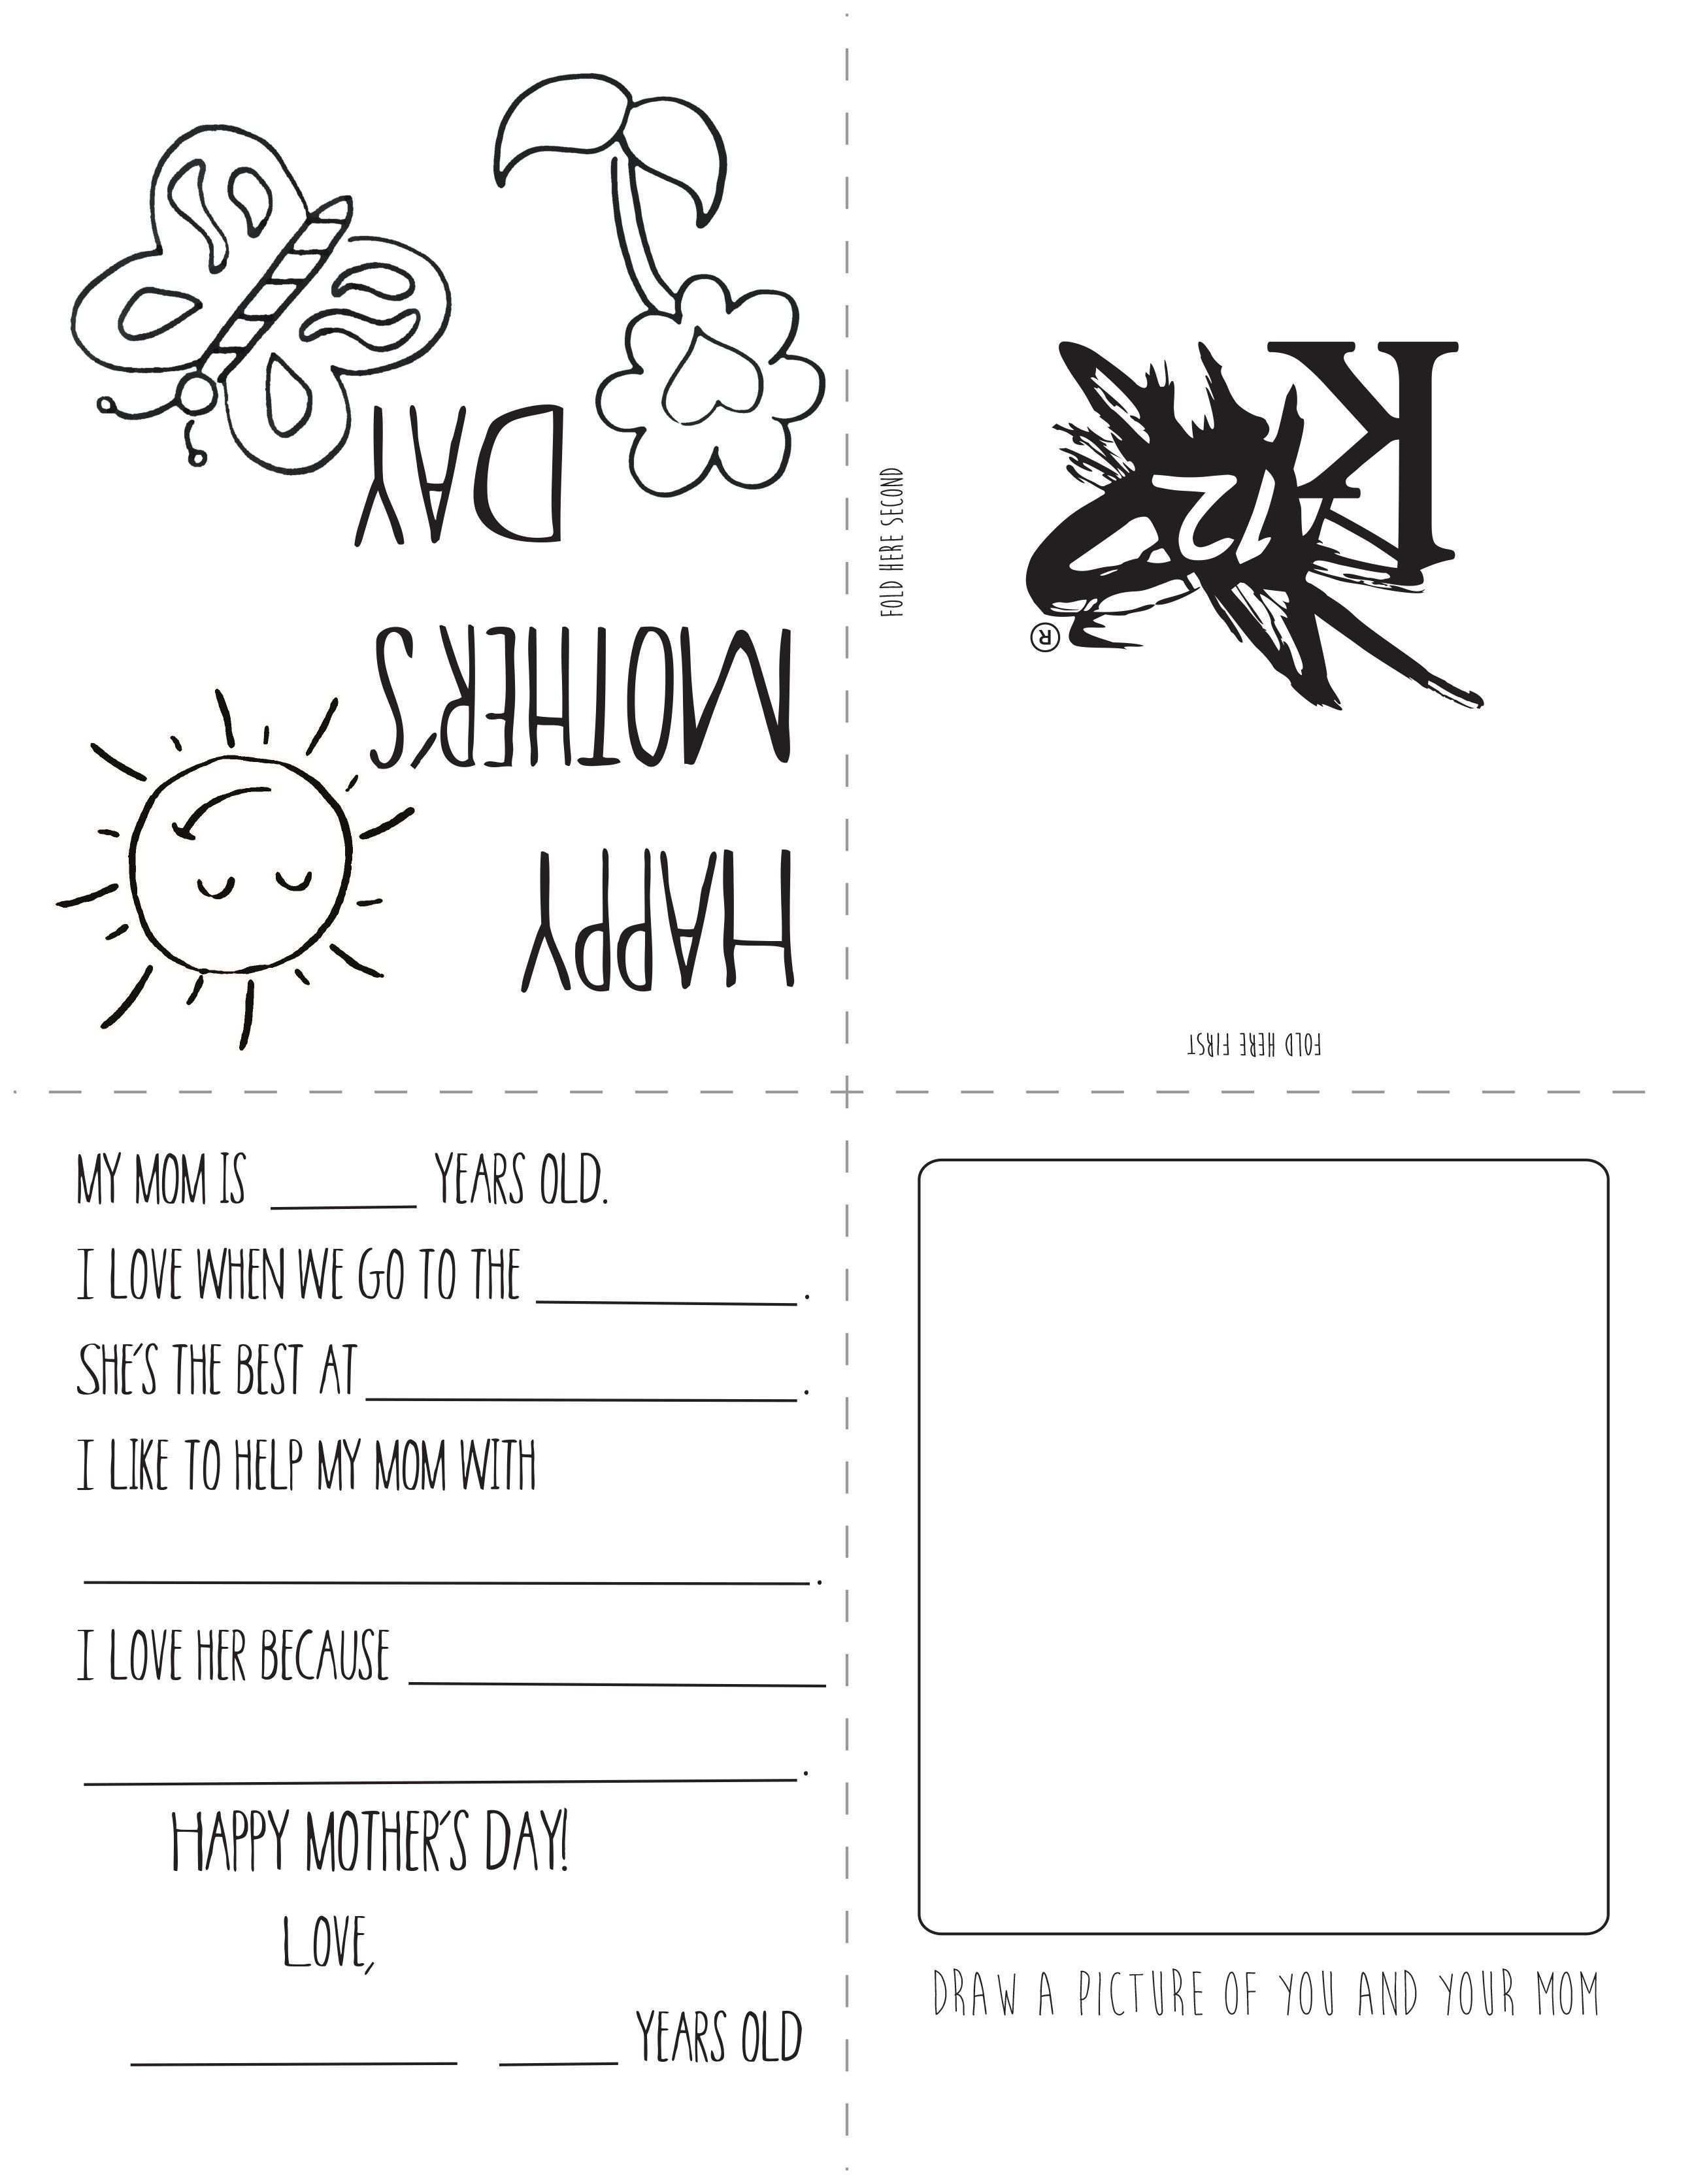 99 Standard Mothers Day Cards Templates Ks2 for Ms Word for Mothers Day Cards Templates Ks2